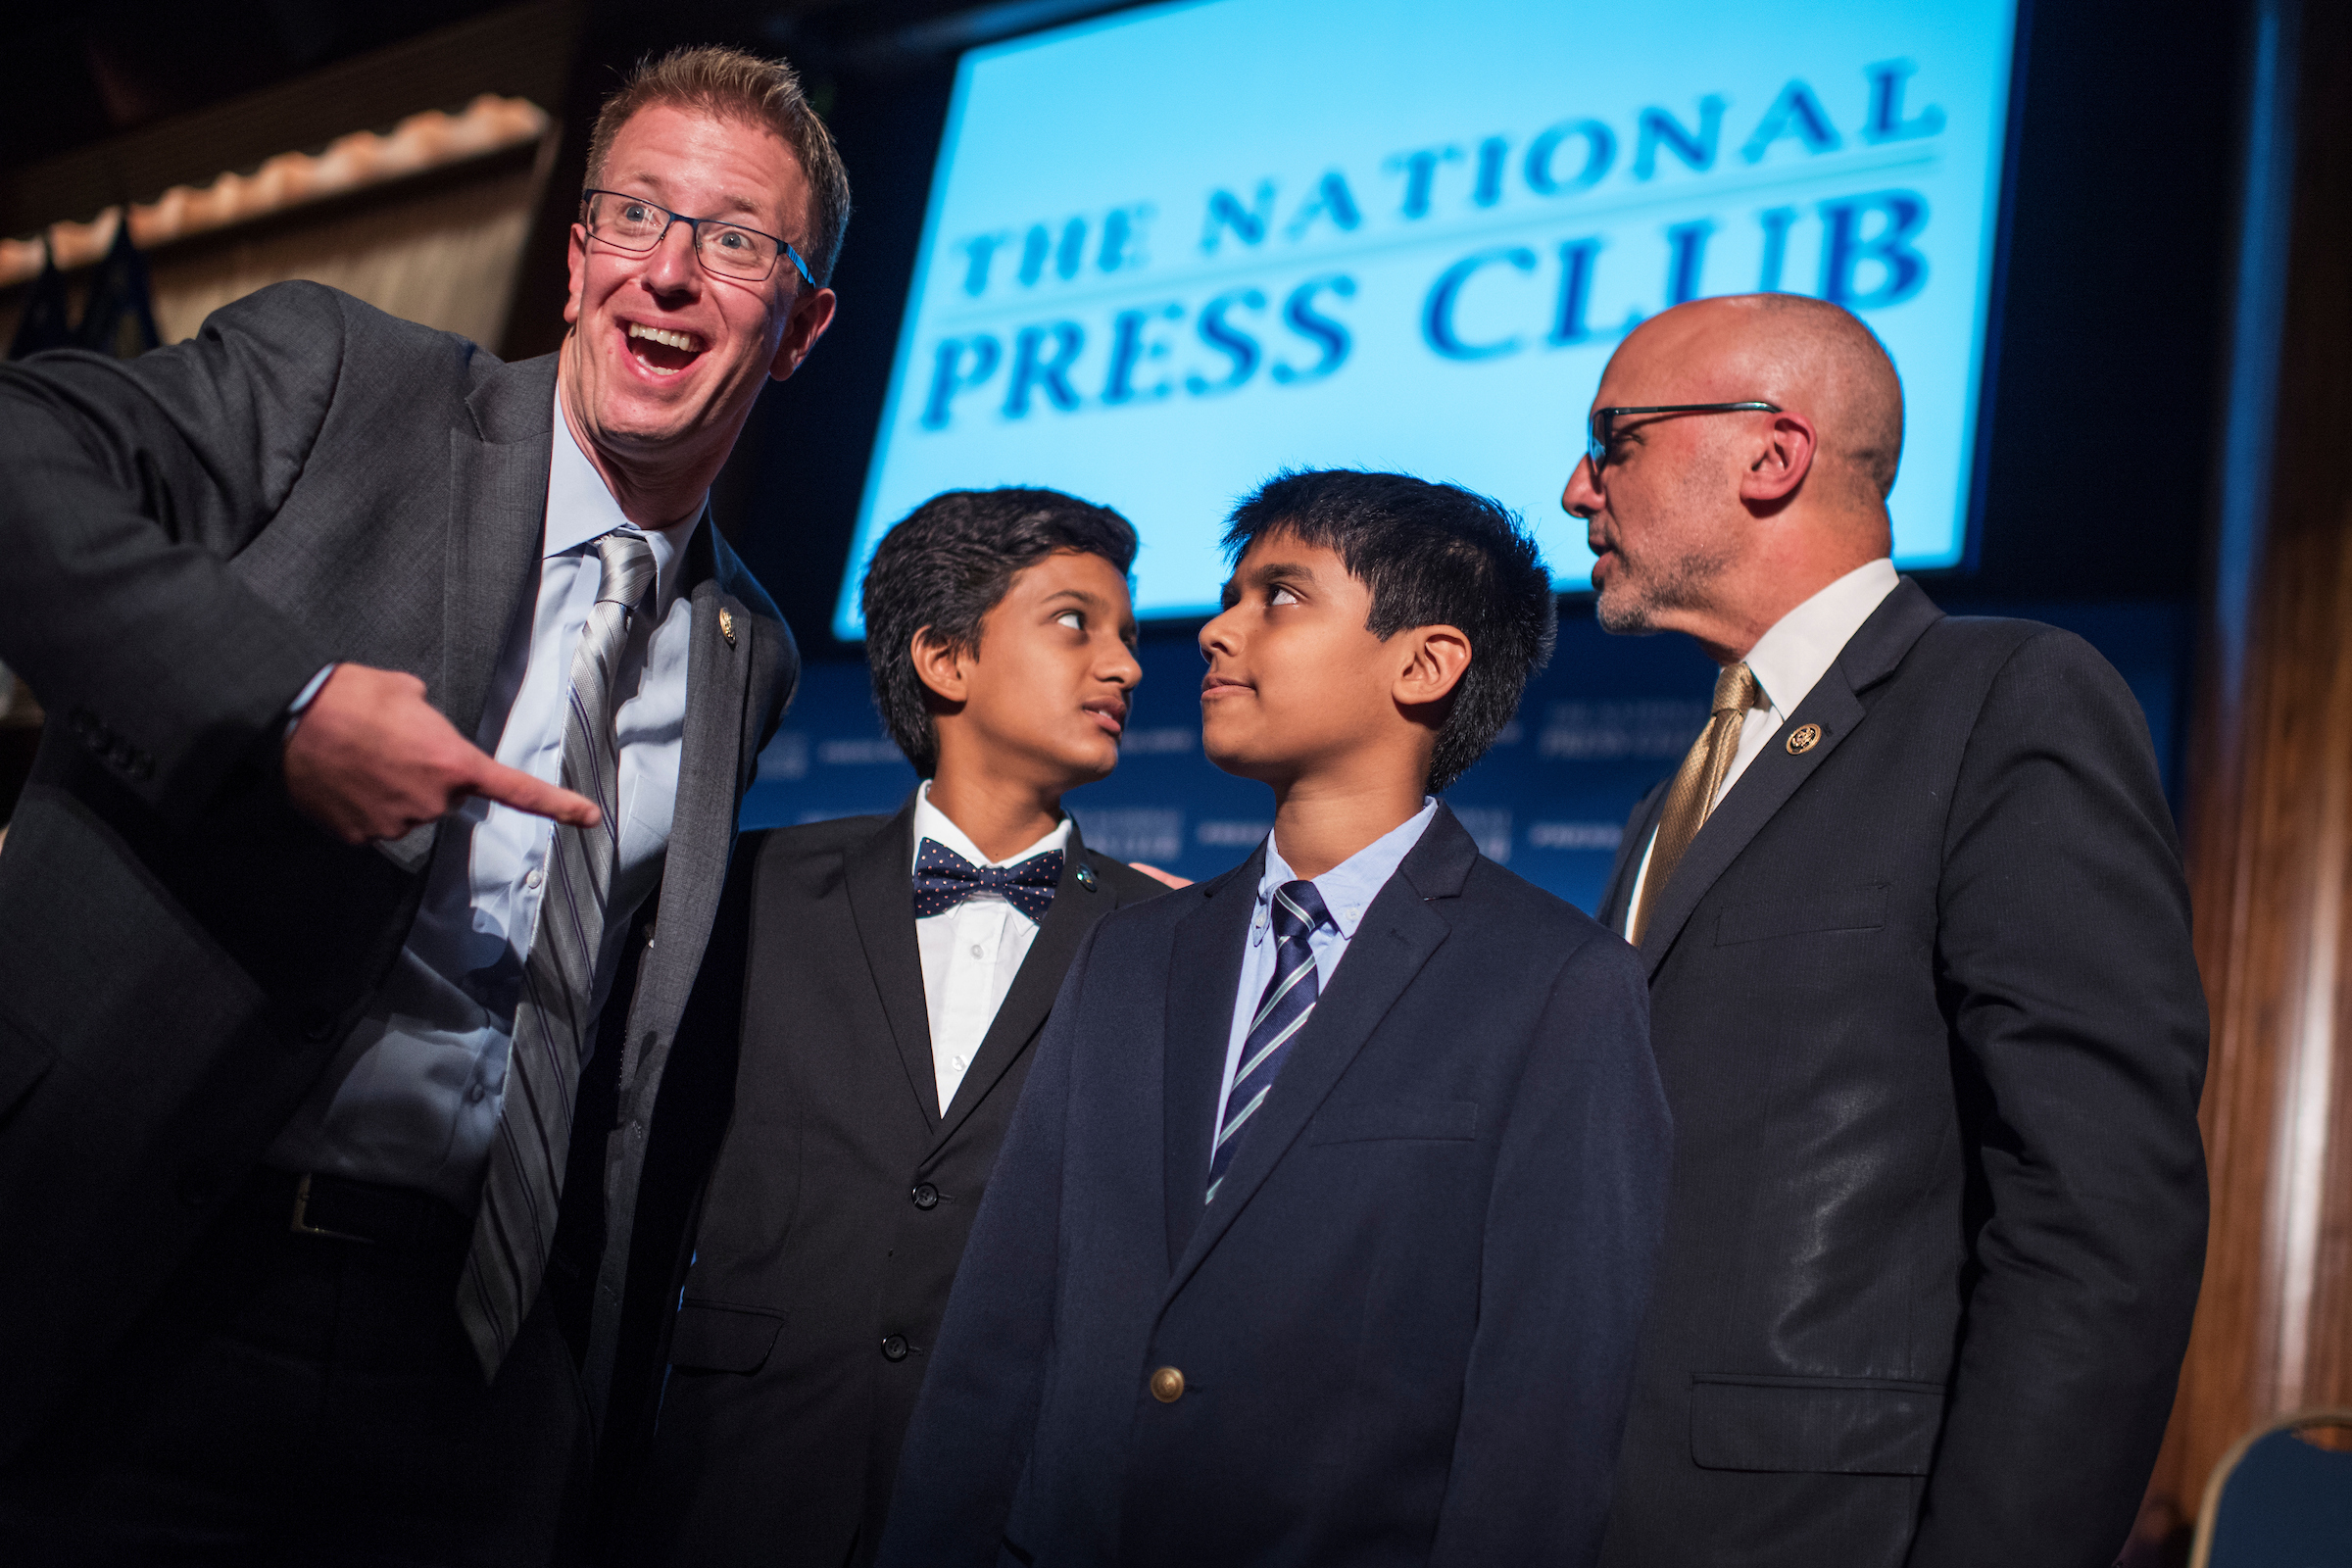 Reps. Derek Kilmer of Washington, far left, and Ted Deutch, far right, of Florida, talk with co-champions of the 2016 Scripps National Spelling Bee Jairam Hathwar, 13, left, and Nihar Janga, 11, before the Politicians vs. Press Spelling Bee at the National Press Club on Wednesday, Sept. 21. (Tom Williams/CQ Roll Call)